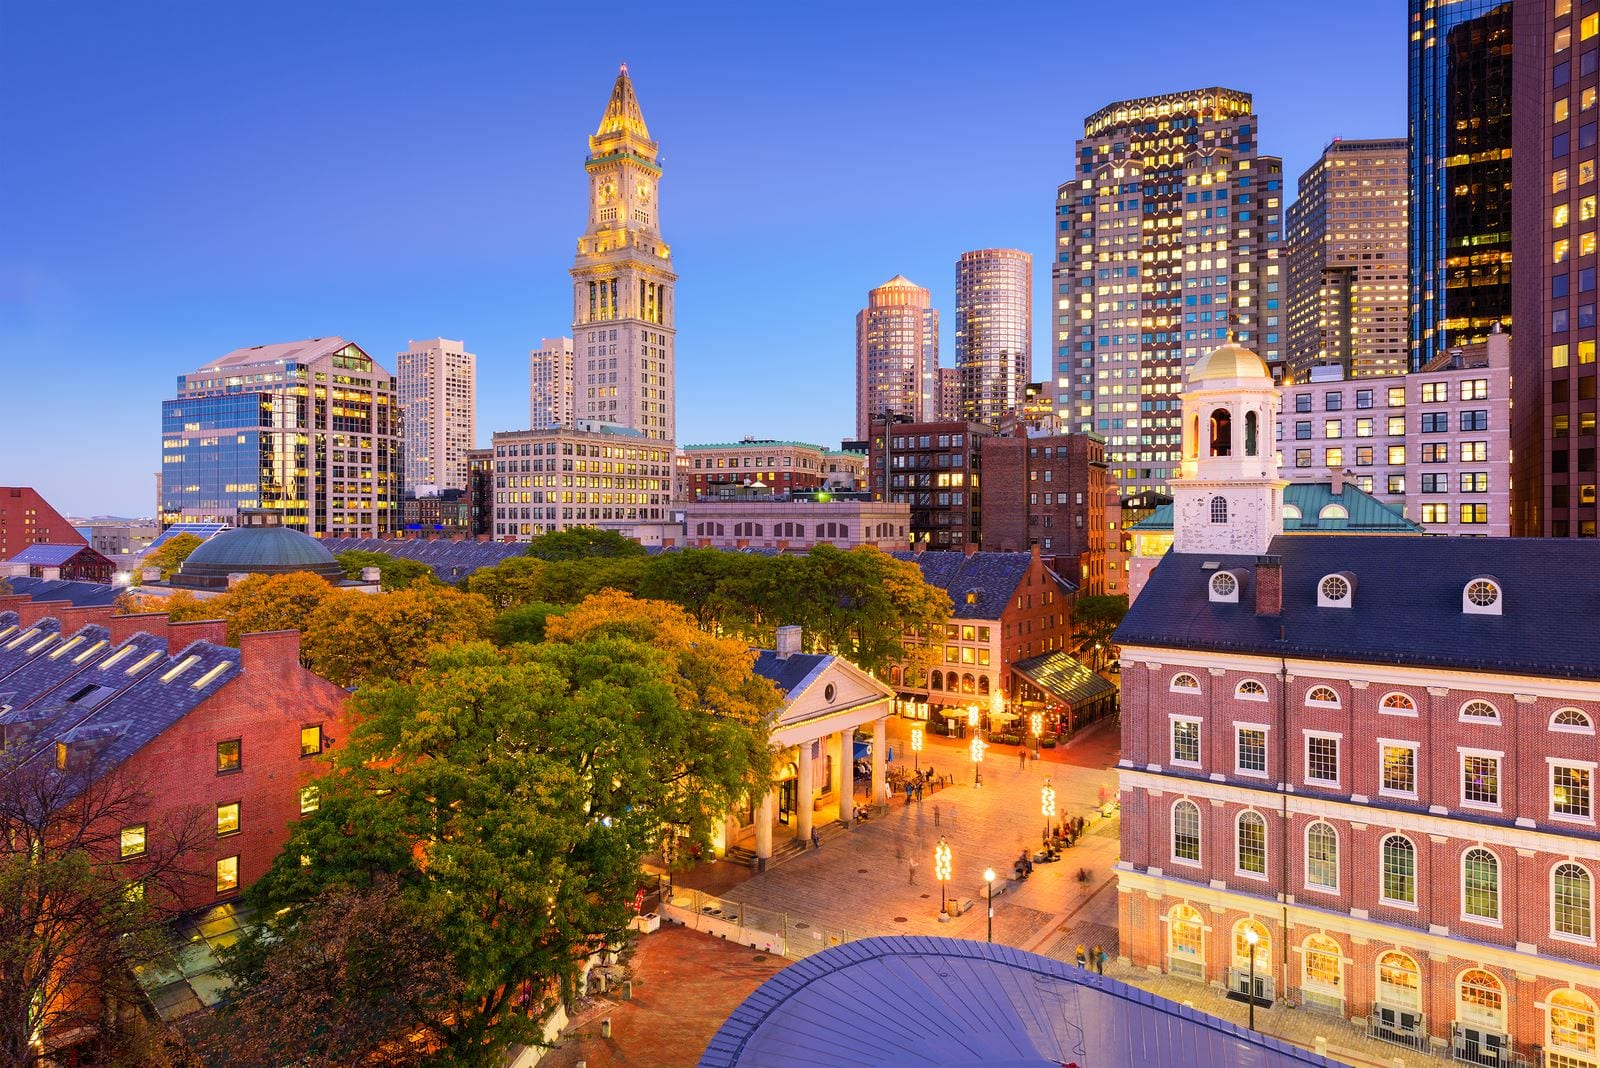 Downtown Boston one of the hottest real estate markets in the country for 2019